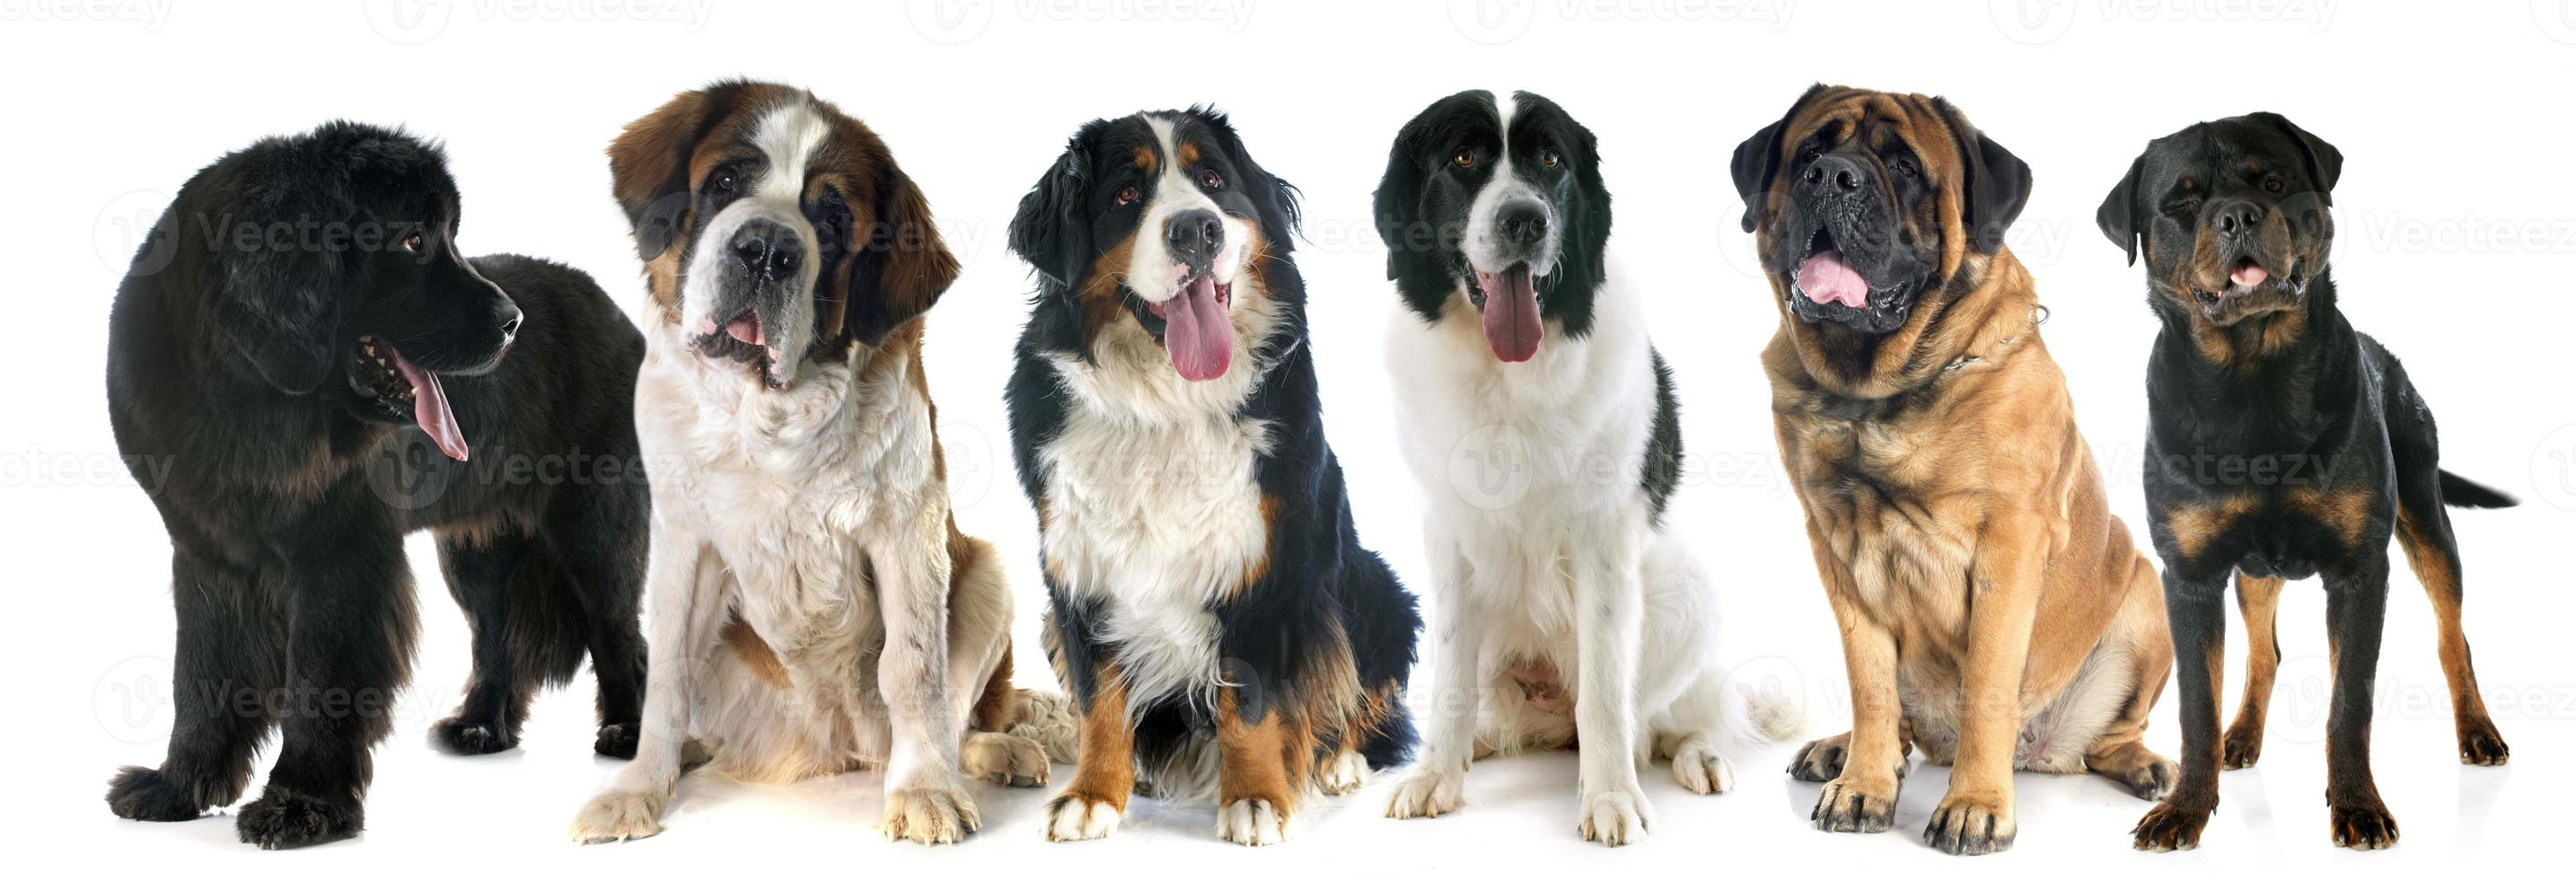 Giant Dogs Stock Photo